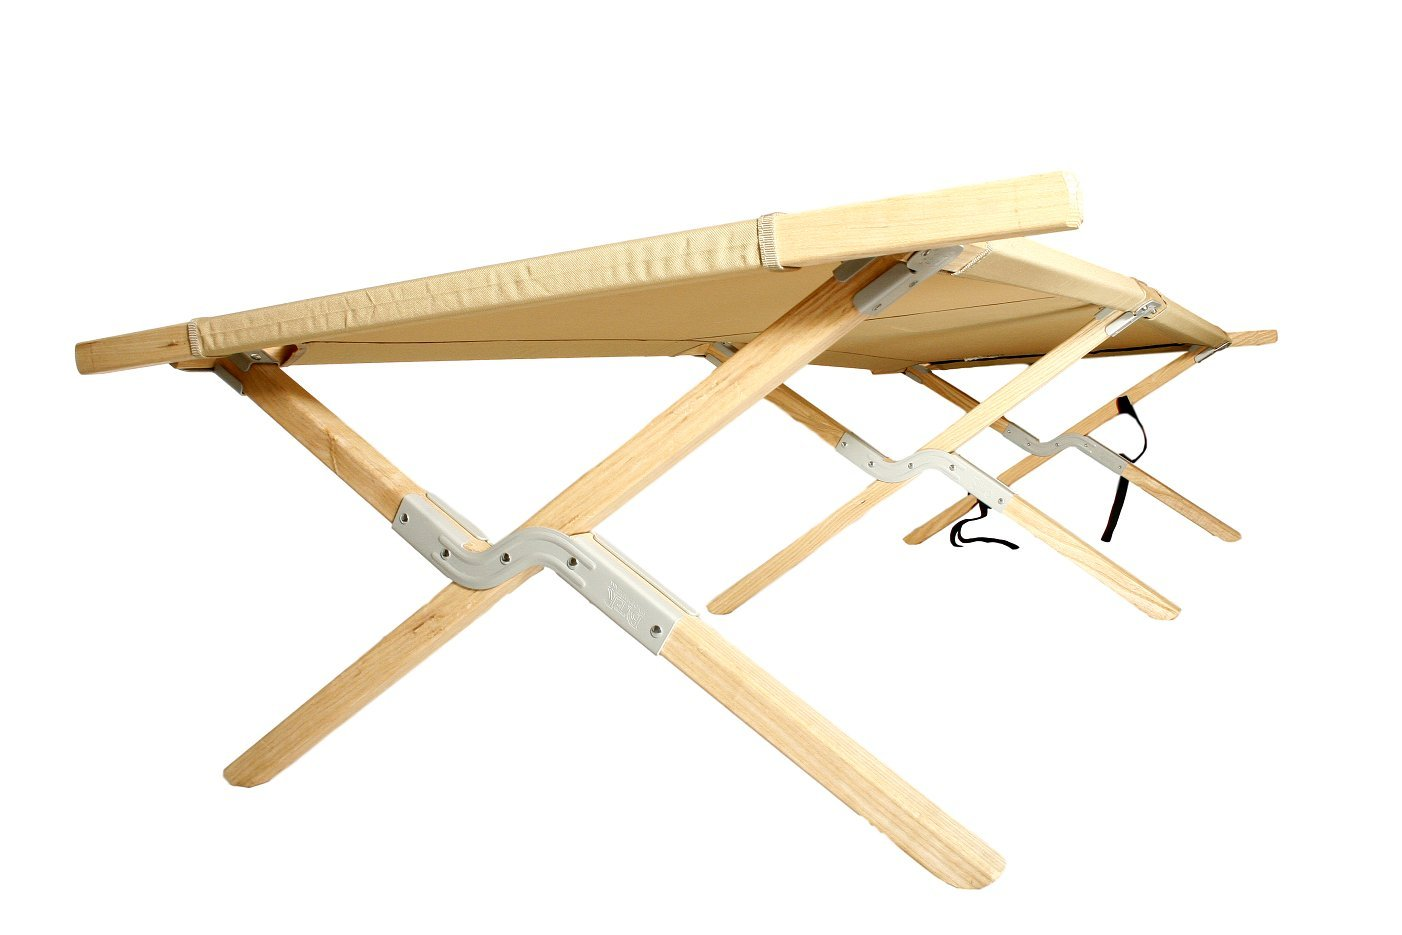 BYER OF MAINE Maine Heritage Cot Army cot Holds 375lbs Hardwood Frame Maine Heritage cot Extra Large Size